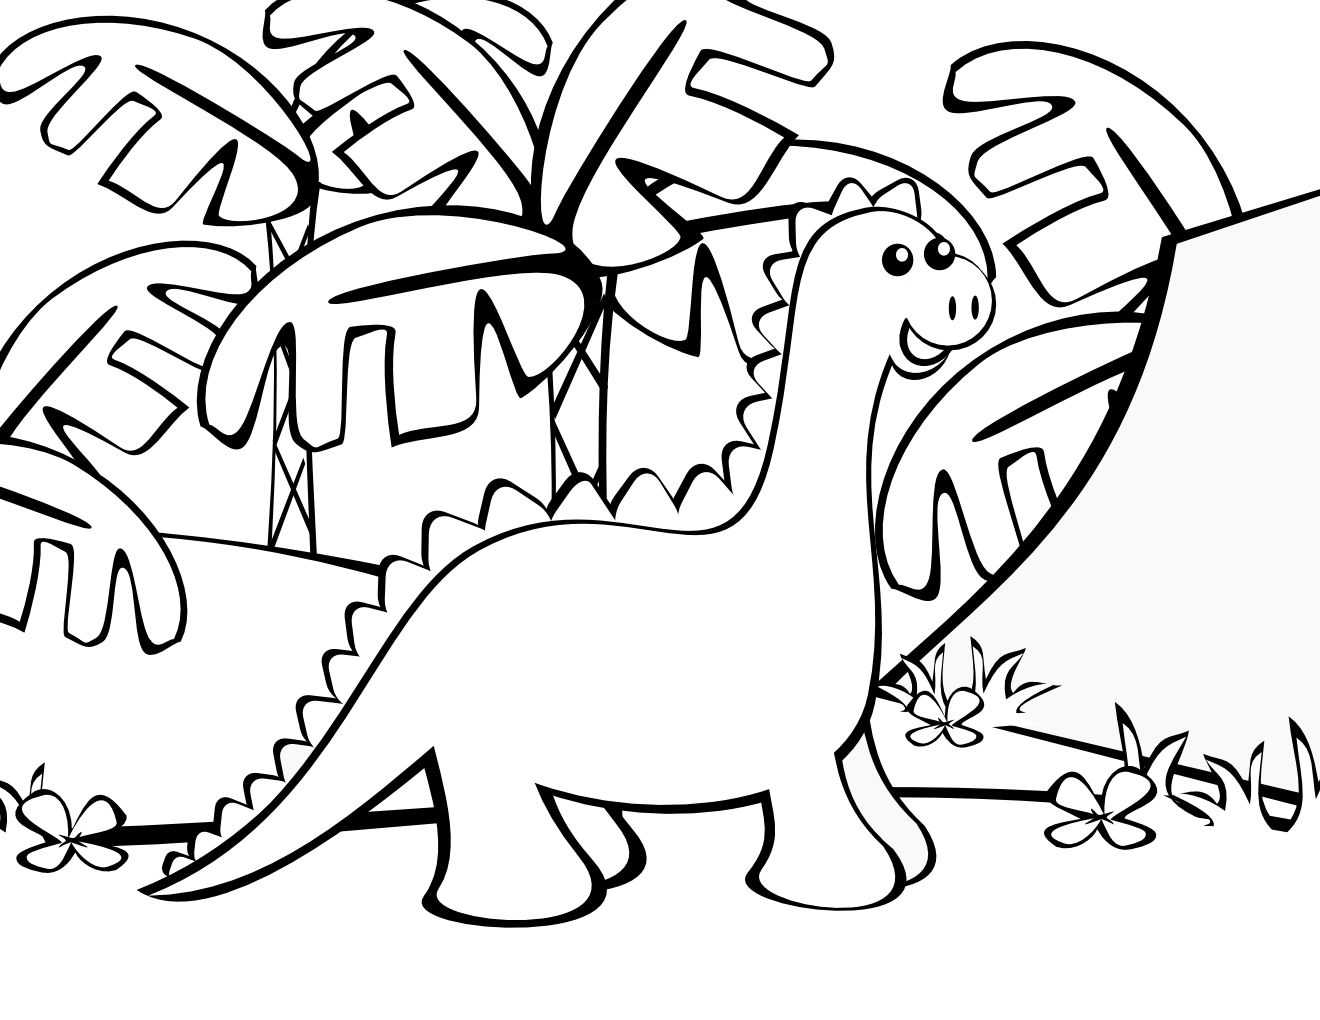 colouring pages dinosaurs printable free printable dinosaur coloring pages dinosaurs pages colouring printable